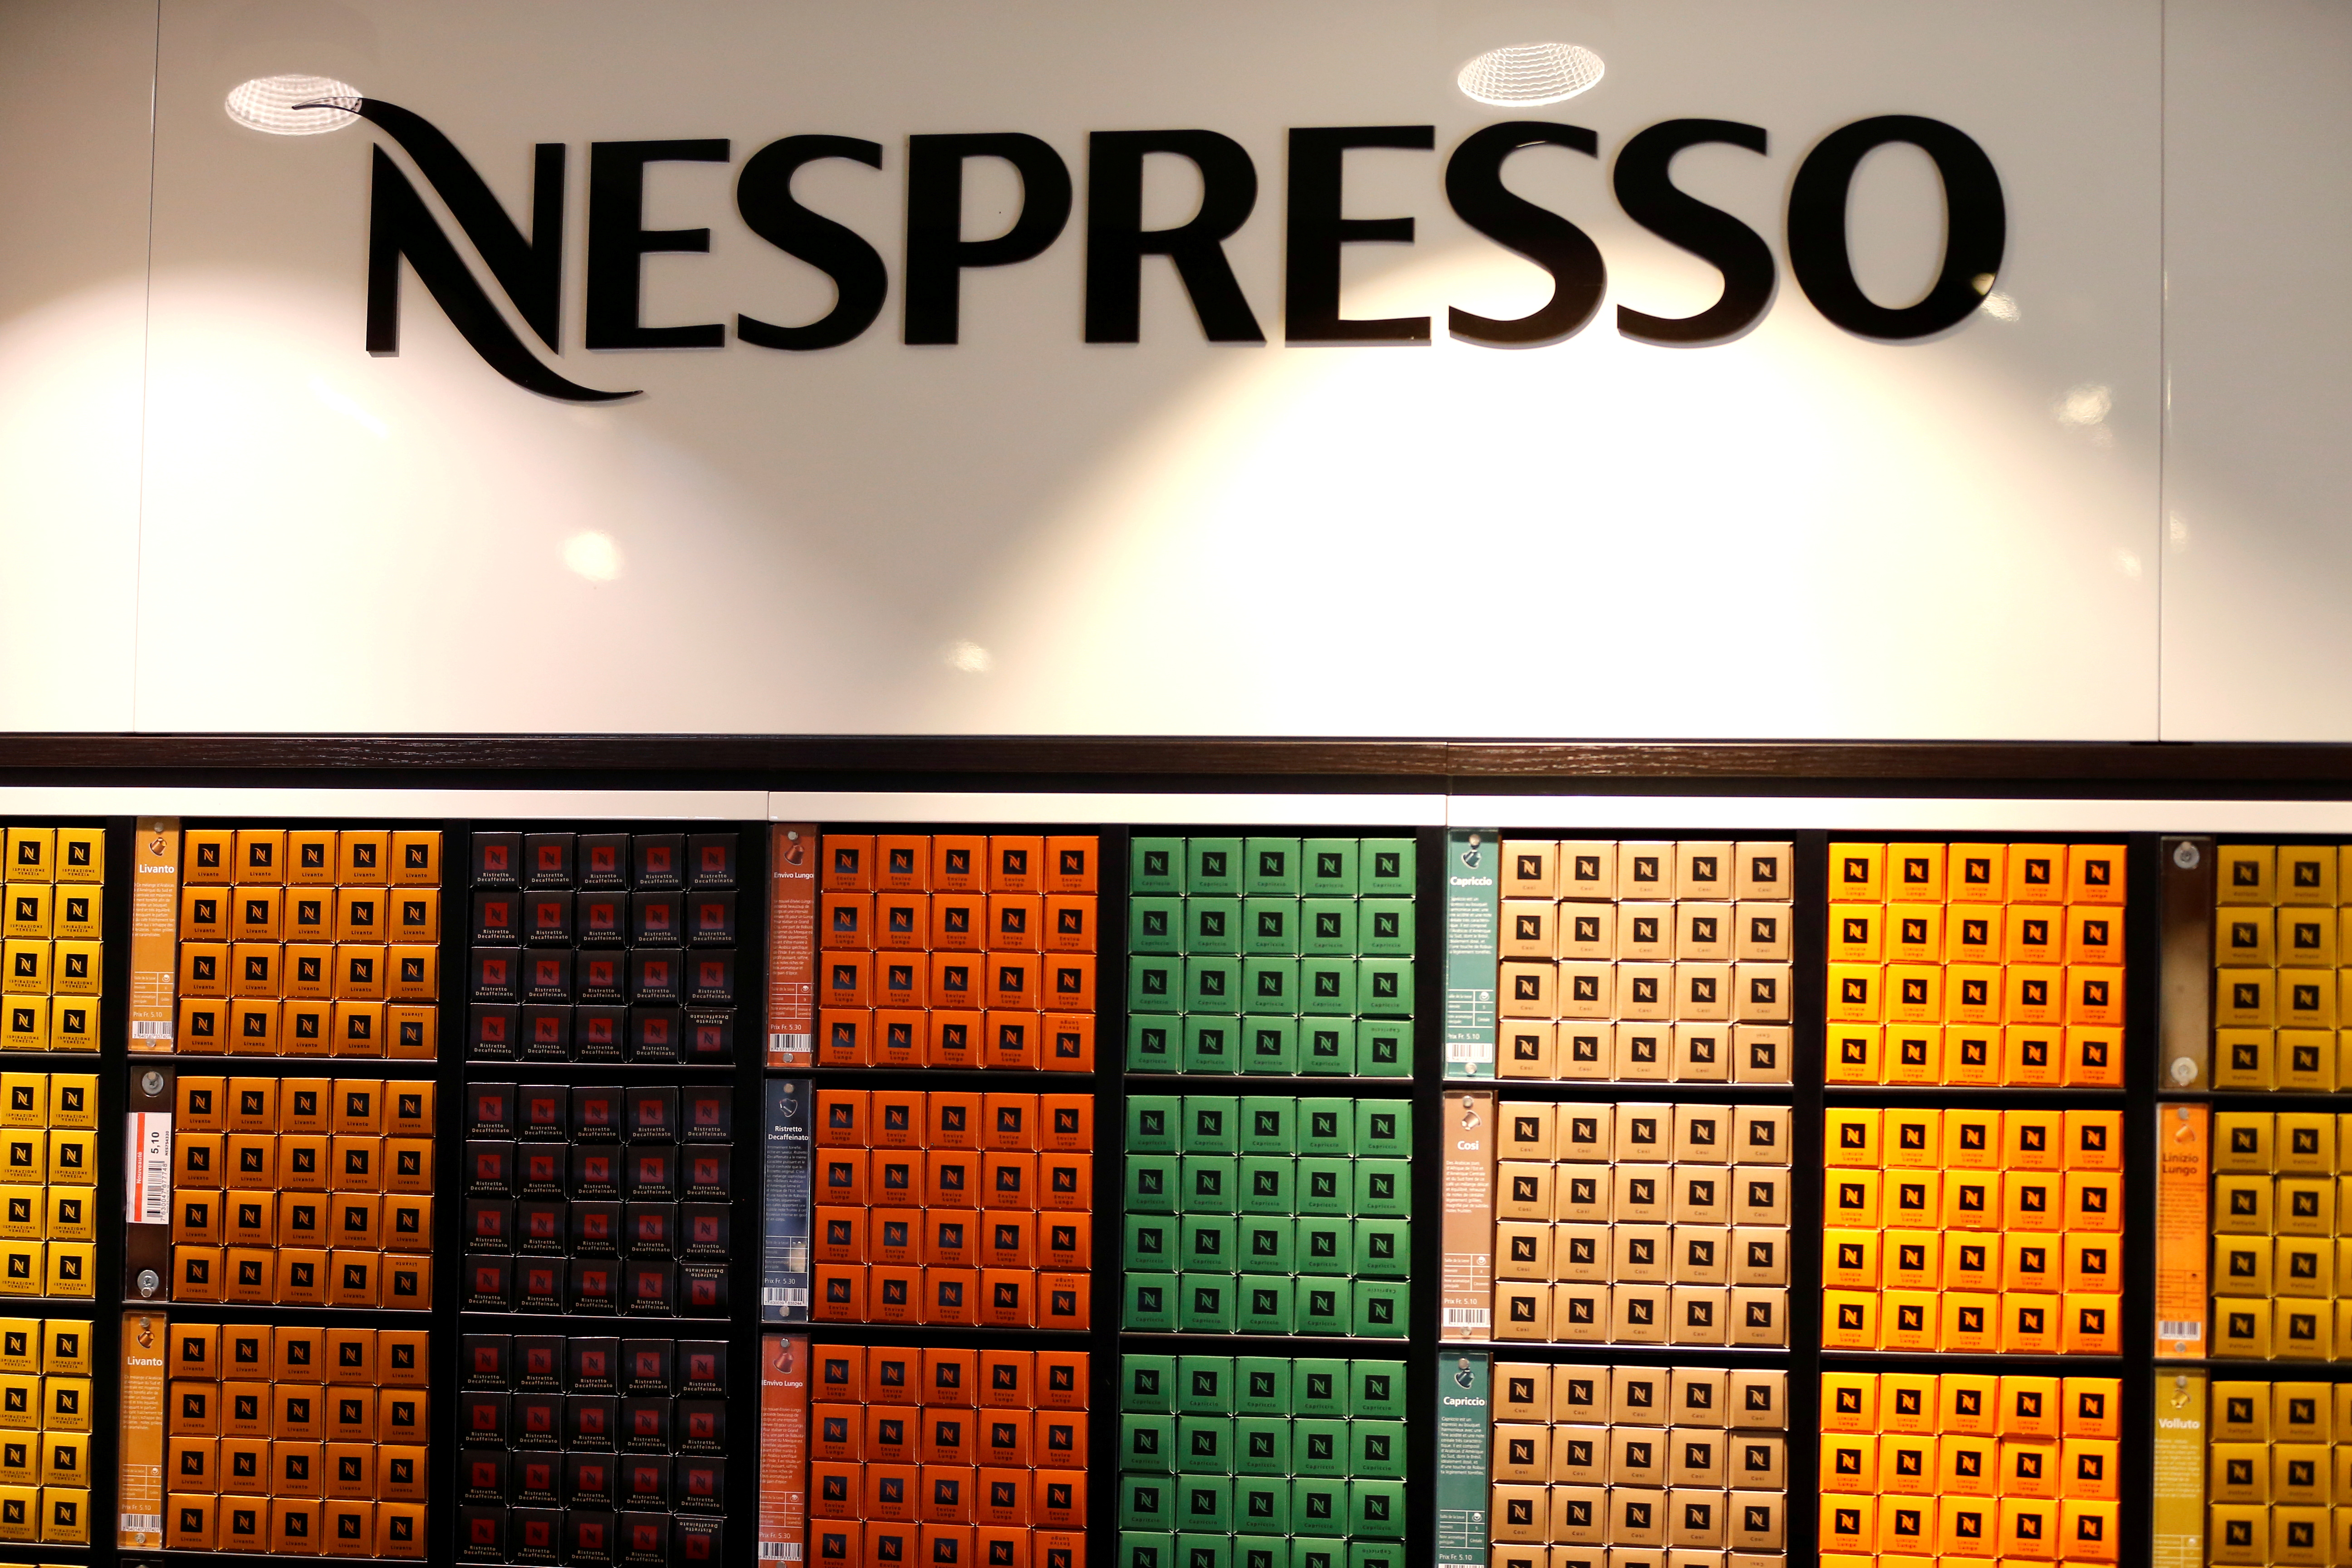 The Nespresso logo and boxes of Nespresso coffee pods are pictured in the supermarket of Nestle headquarters in Vevey, Switzerland, February 13, 2020. REUTERS/Pierre Albouy/File Photo